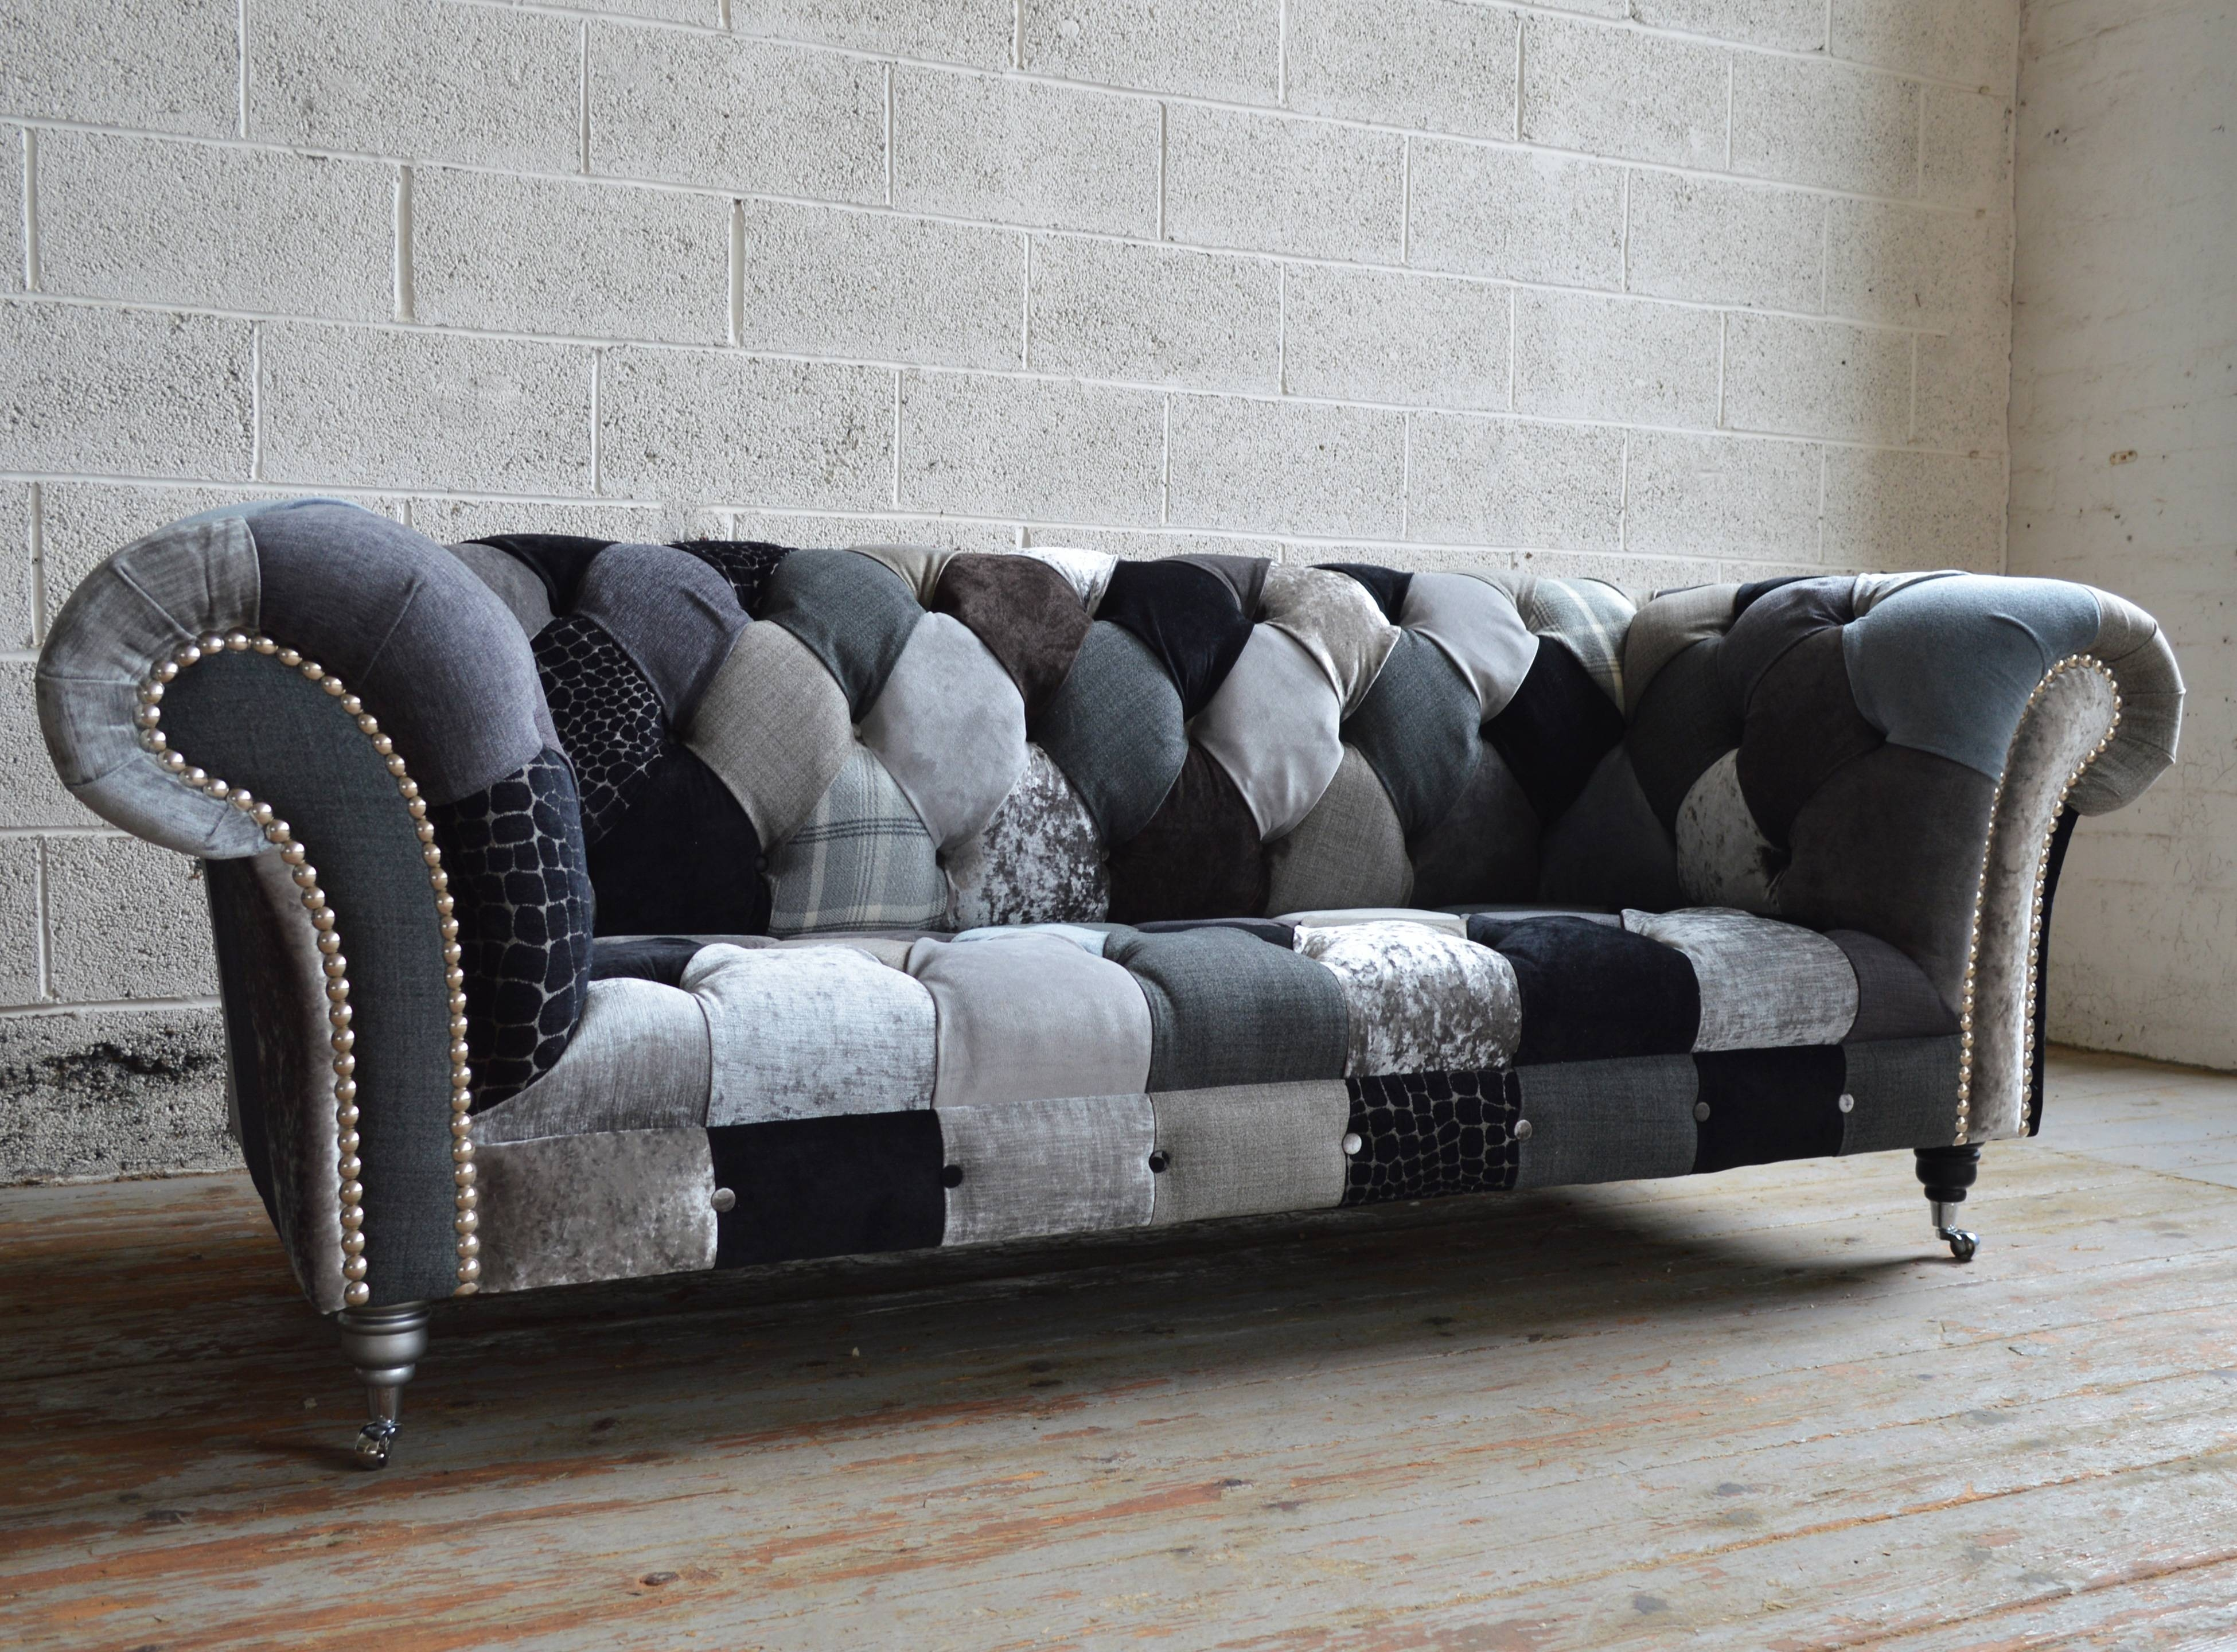 Chester Patchwork Chesterfield Sofa | Abode Sofas within Chesterfield Sofas and Chairs (Image 3 of 15)